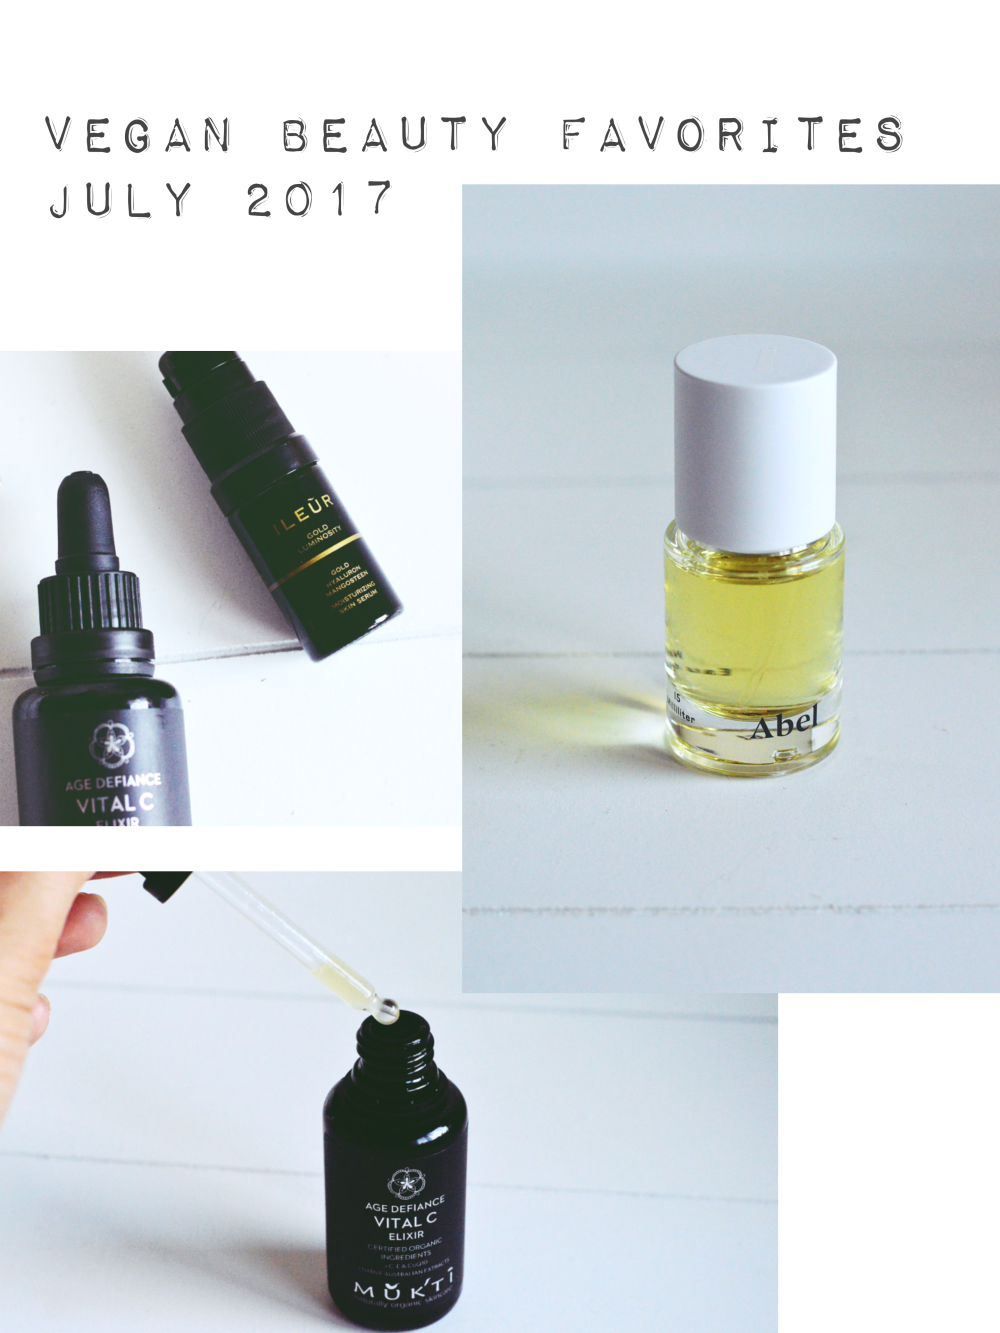 Vegan Beauty Favorites July 2017